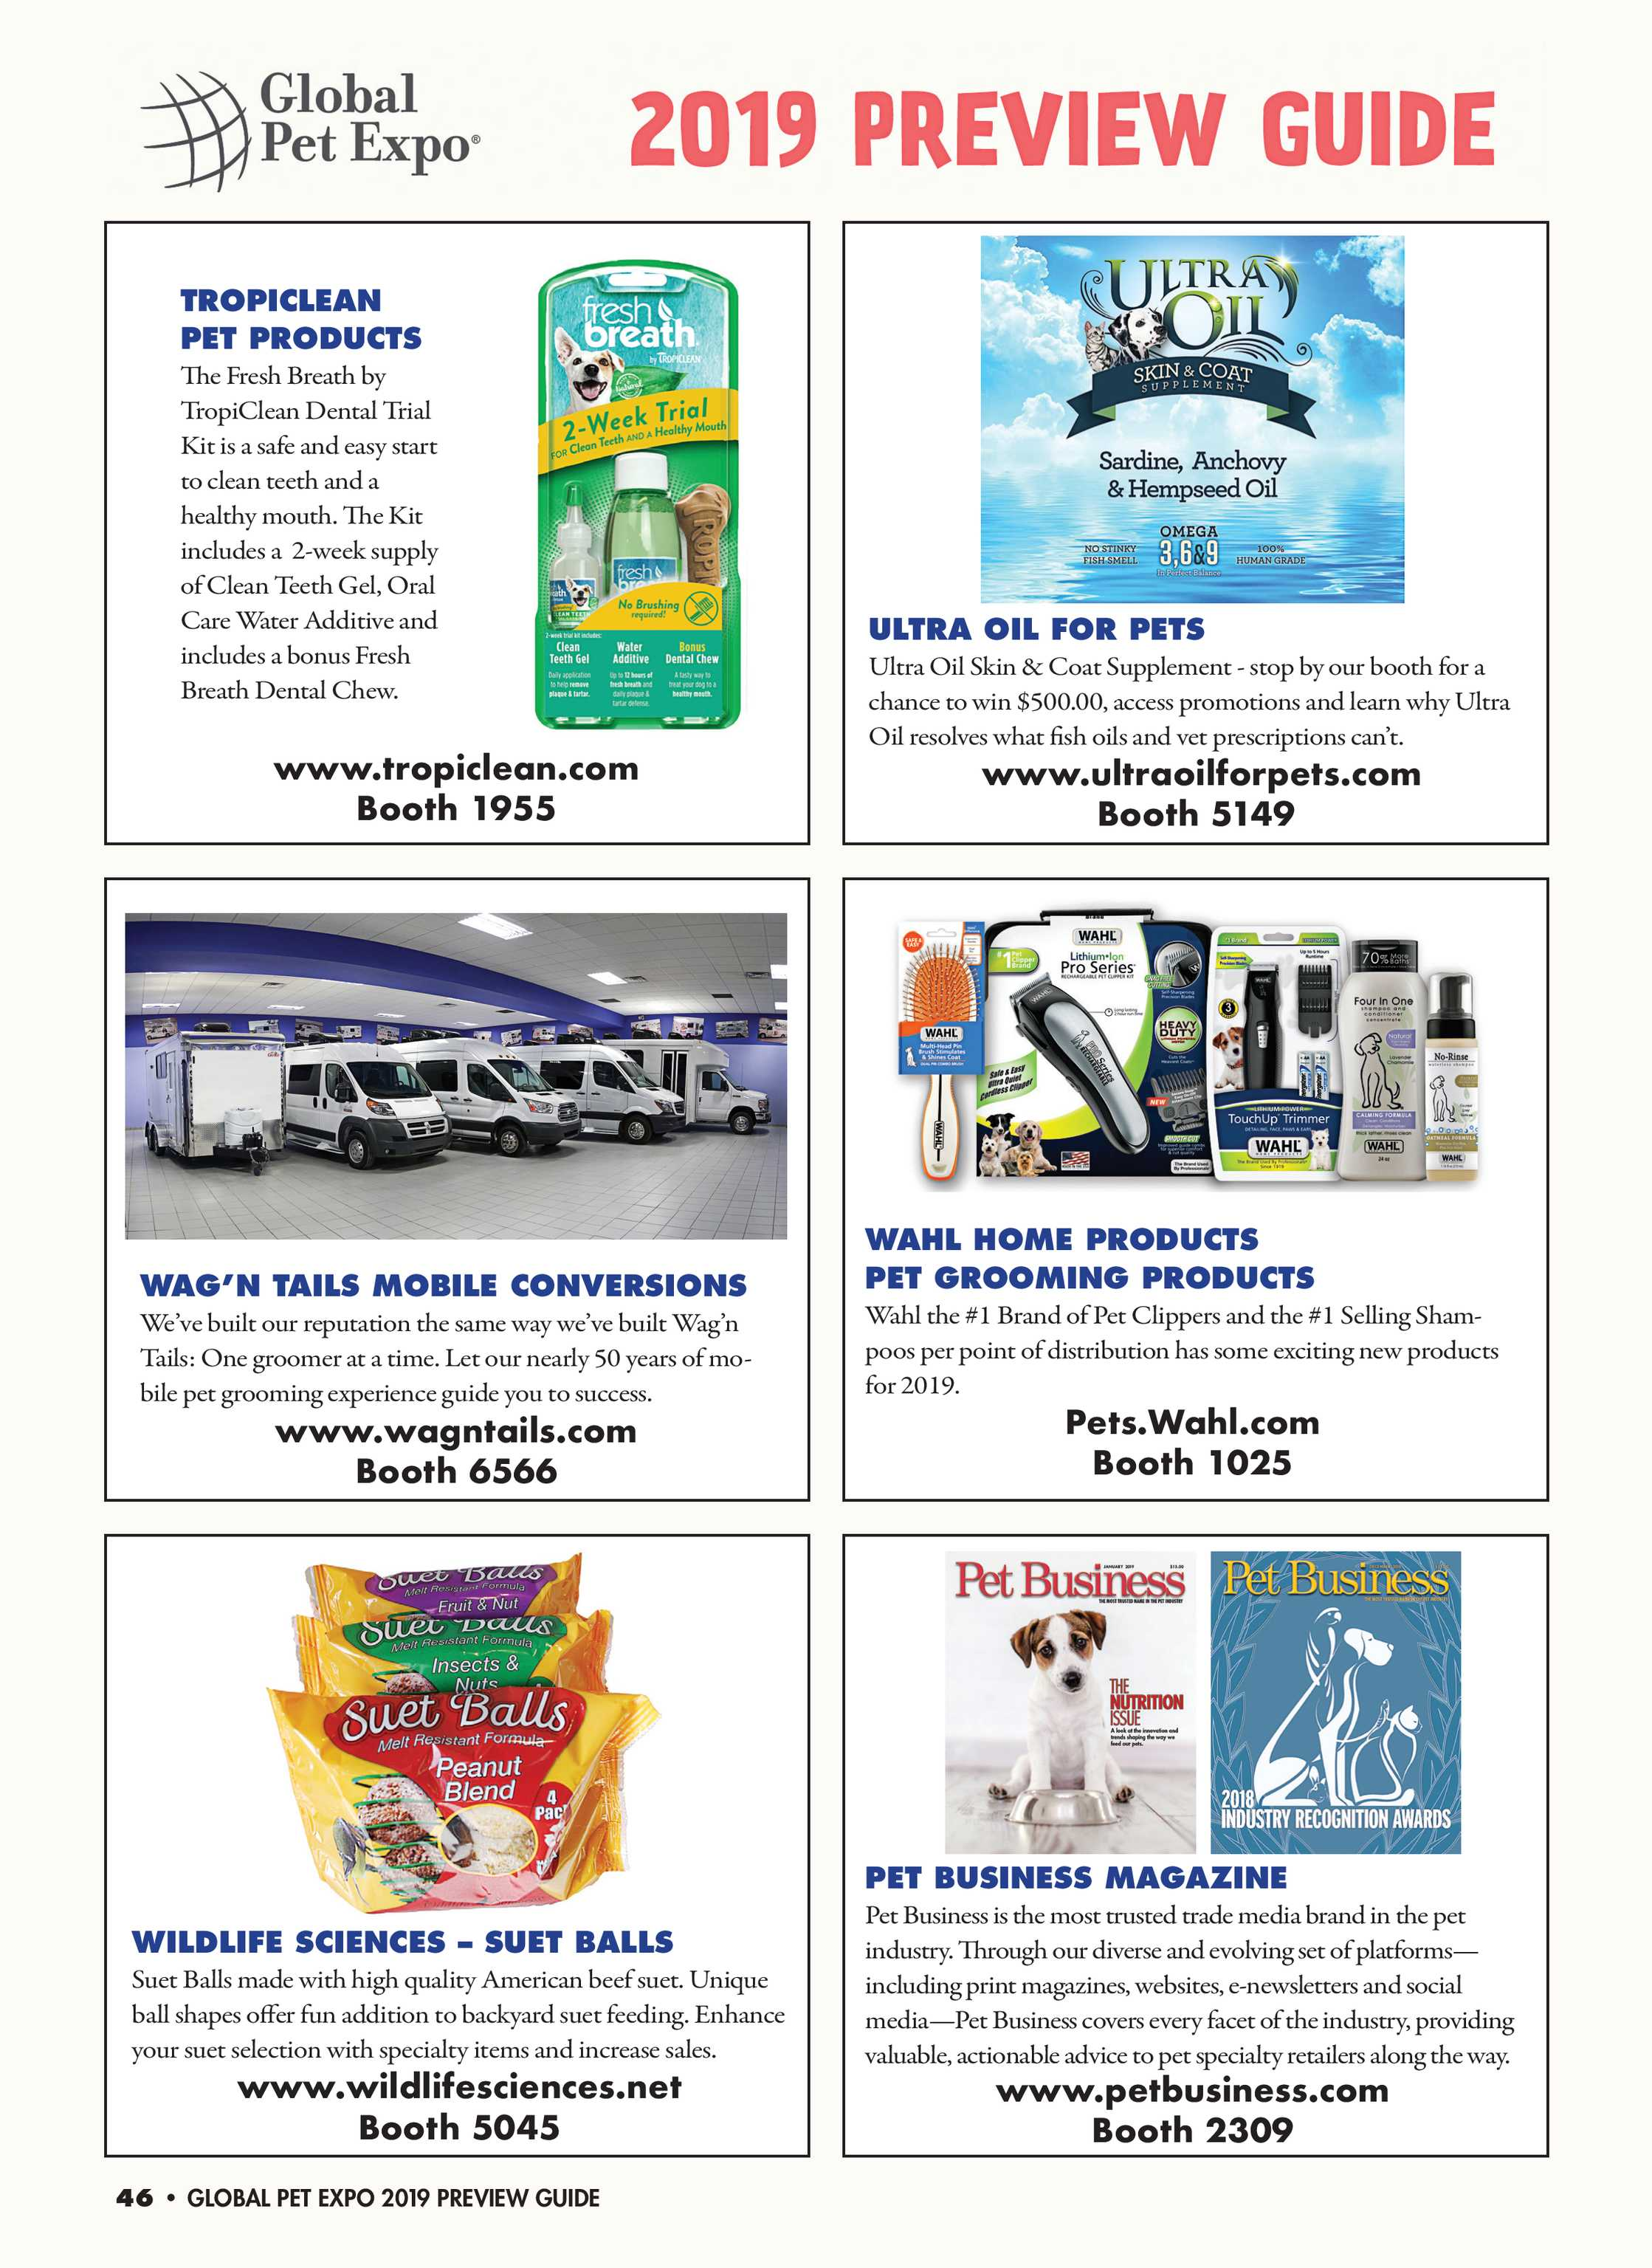 Pet Business - Global Pet Expo Preview Guide 2019 - page 46